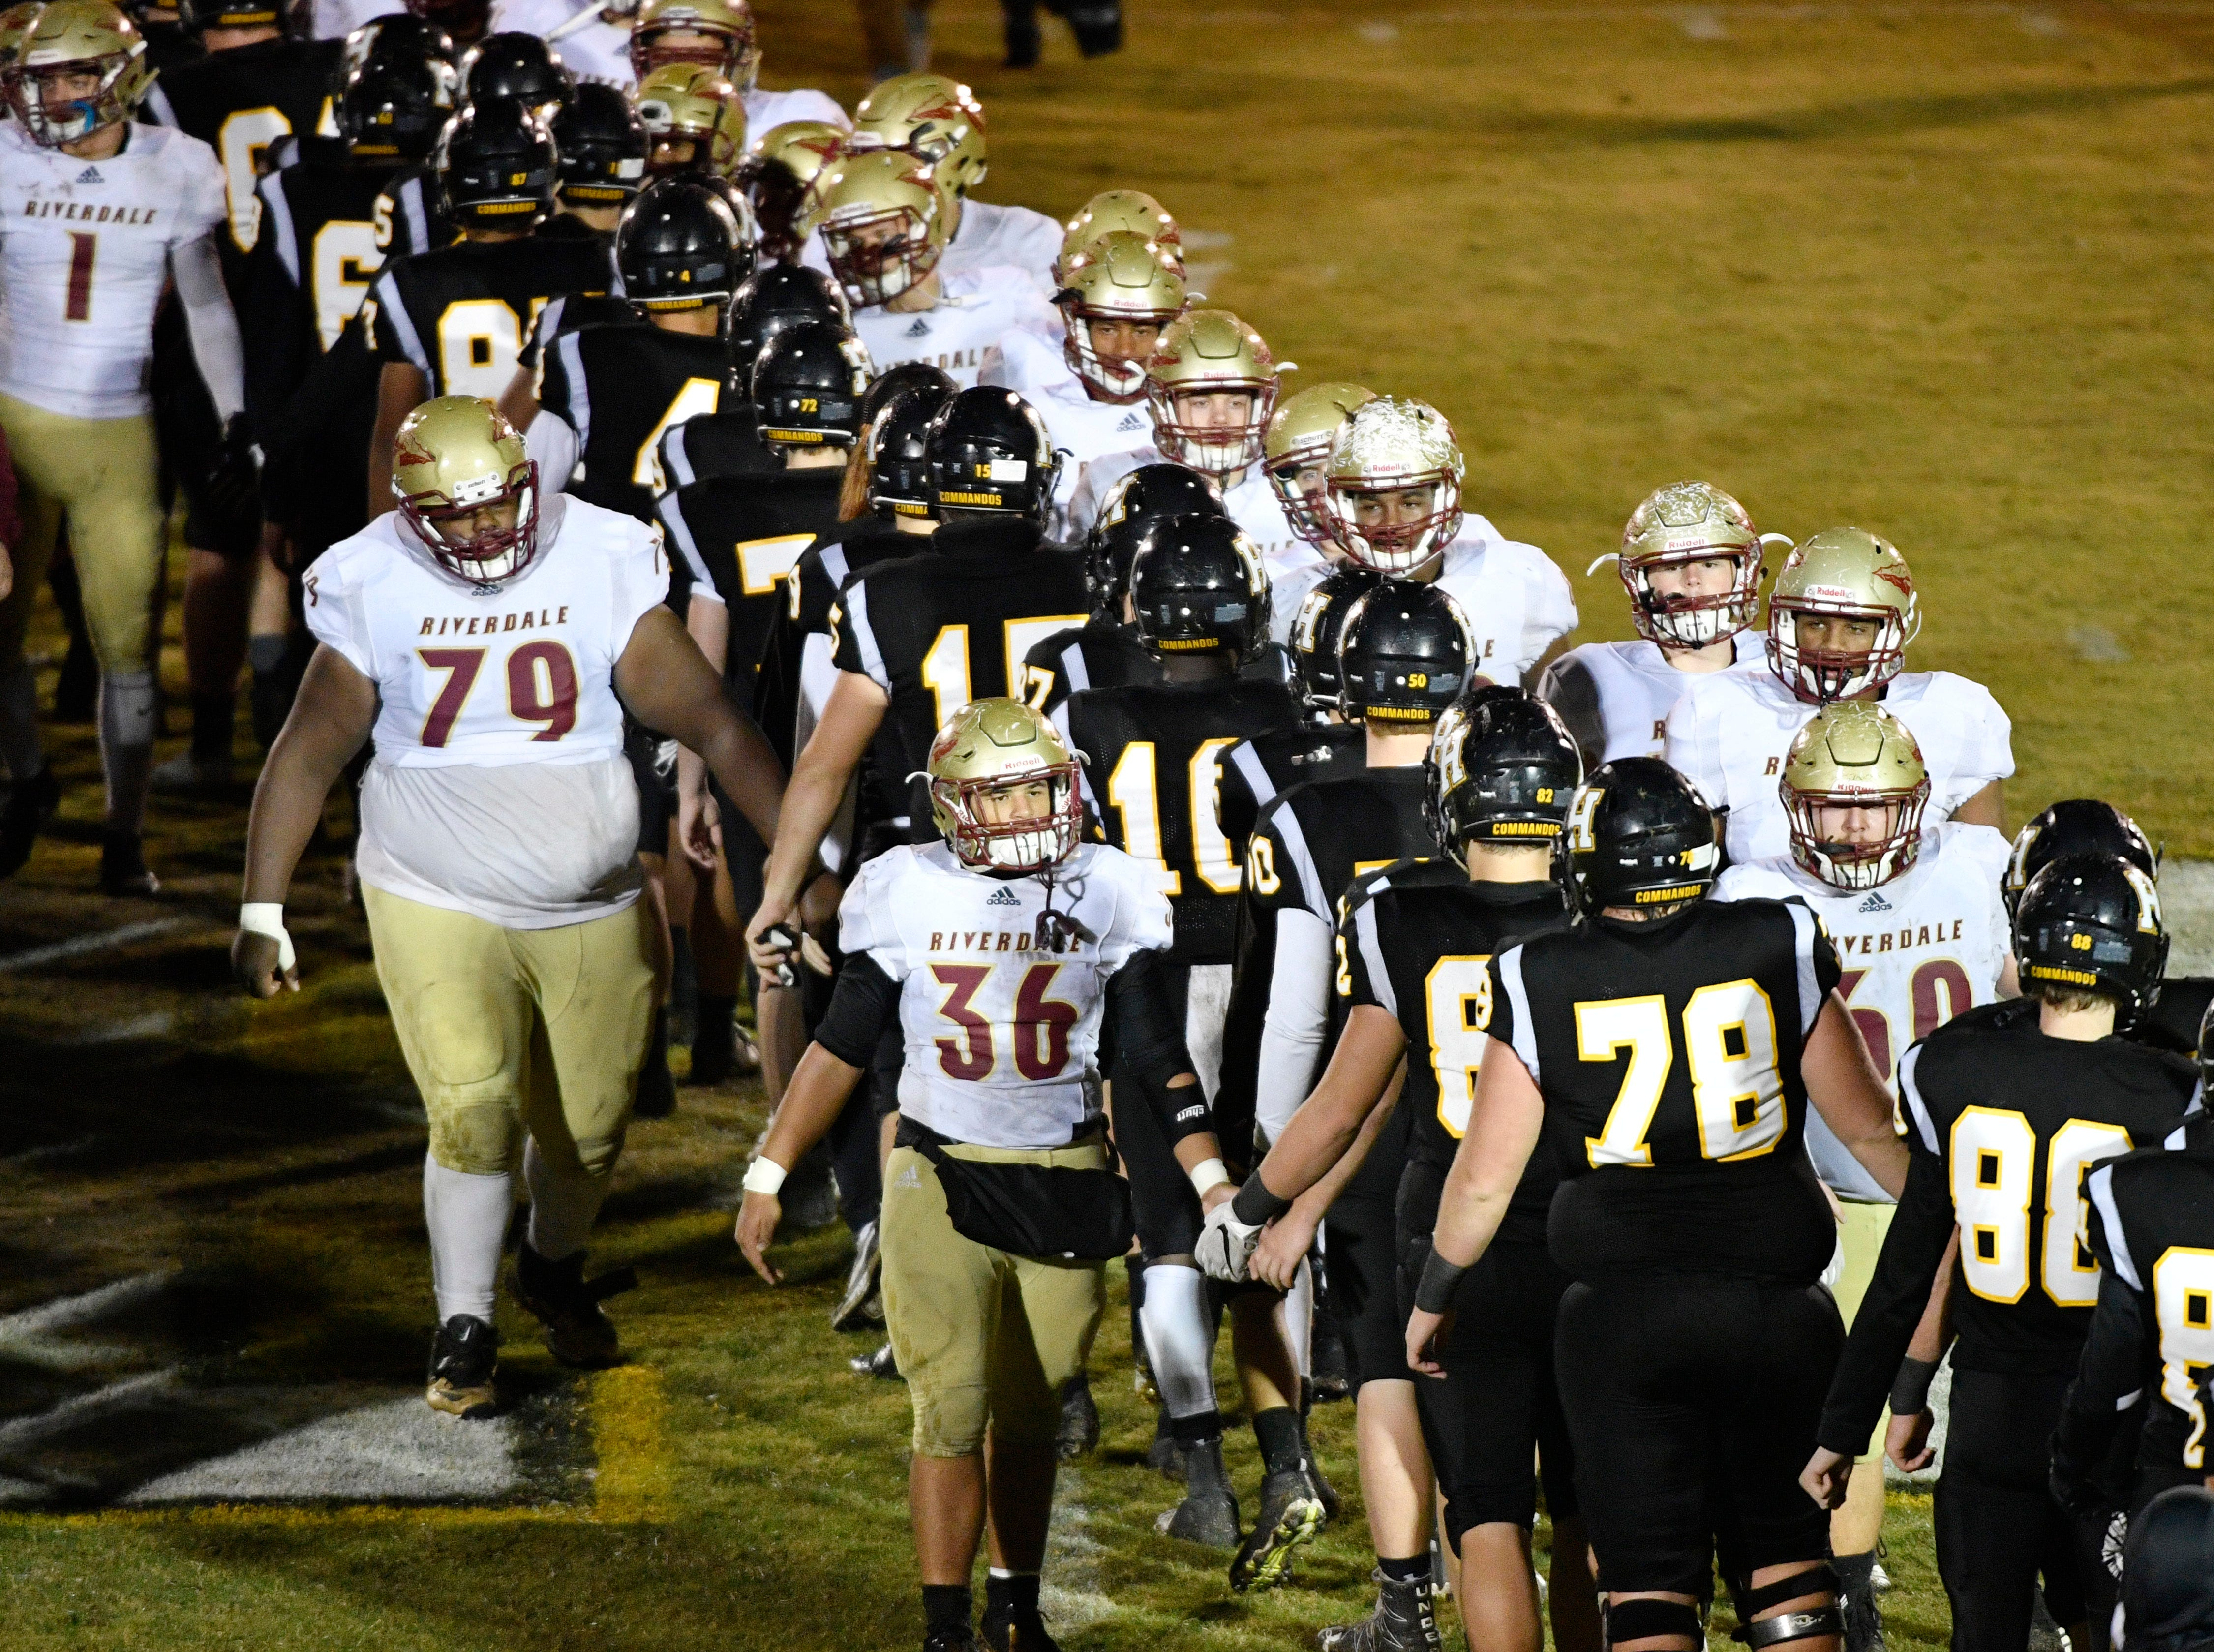 Riverdale and Hendersonville shake hands after Hendersonville won 23-14 Friday Nov. 2, 2018, in Hendersonville, Tenn.